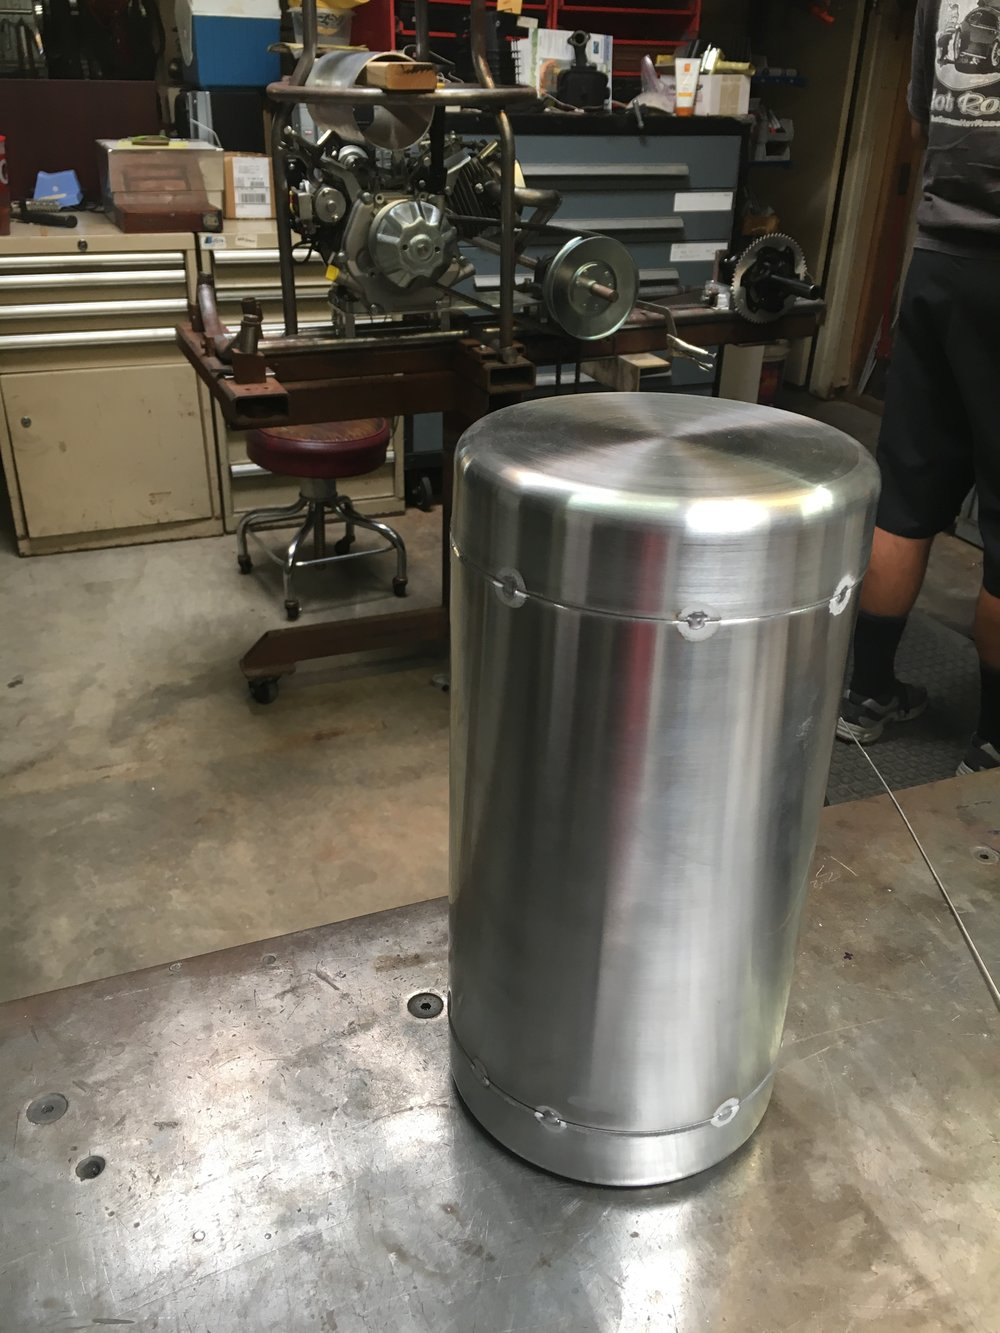 1.5 gallon fuel tank